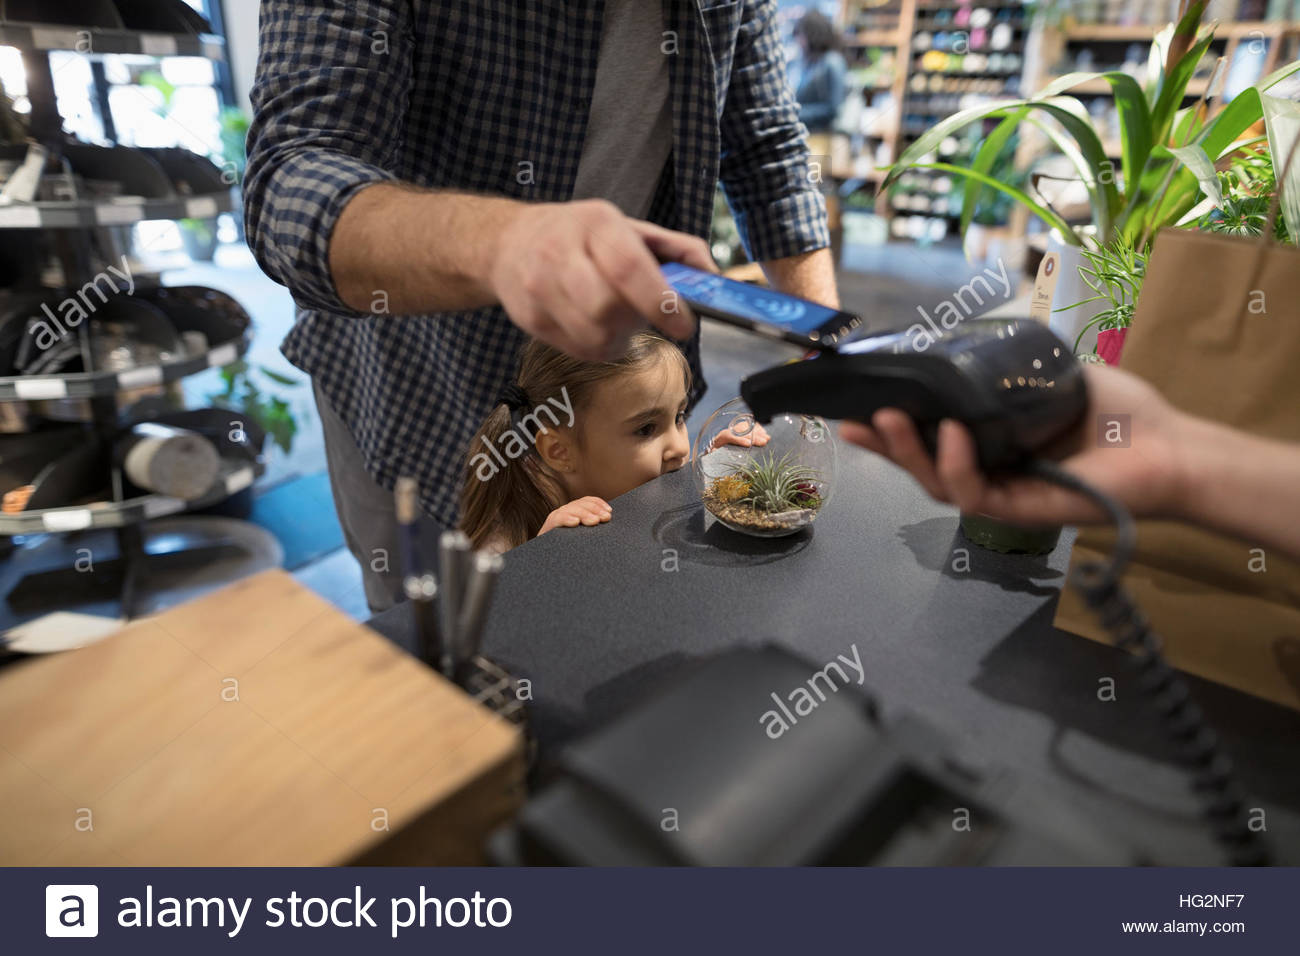 Close up father and daughter paying with smart phone contactless payment at plant shop counter - Stock Image